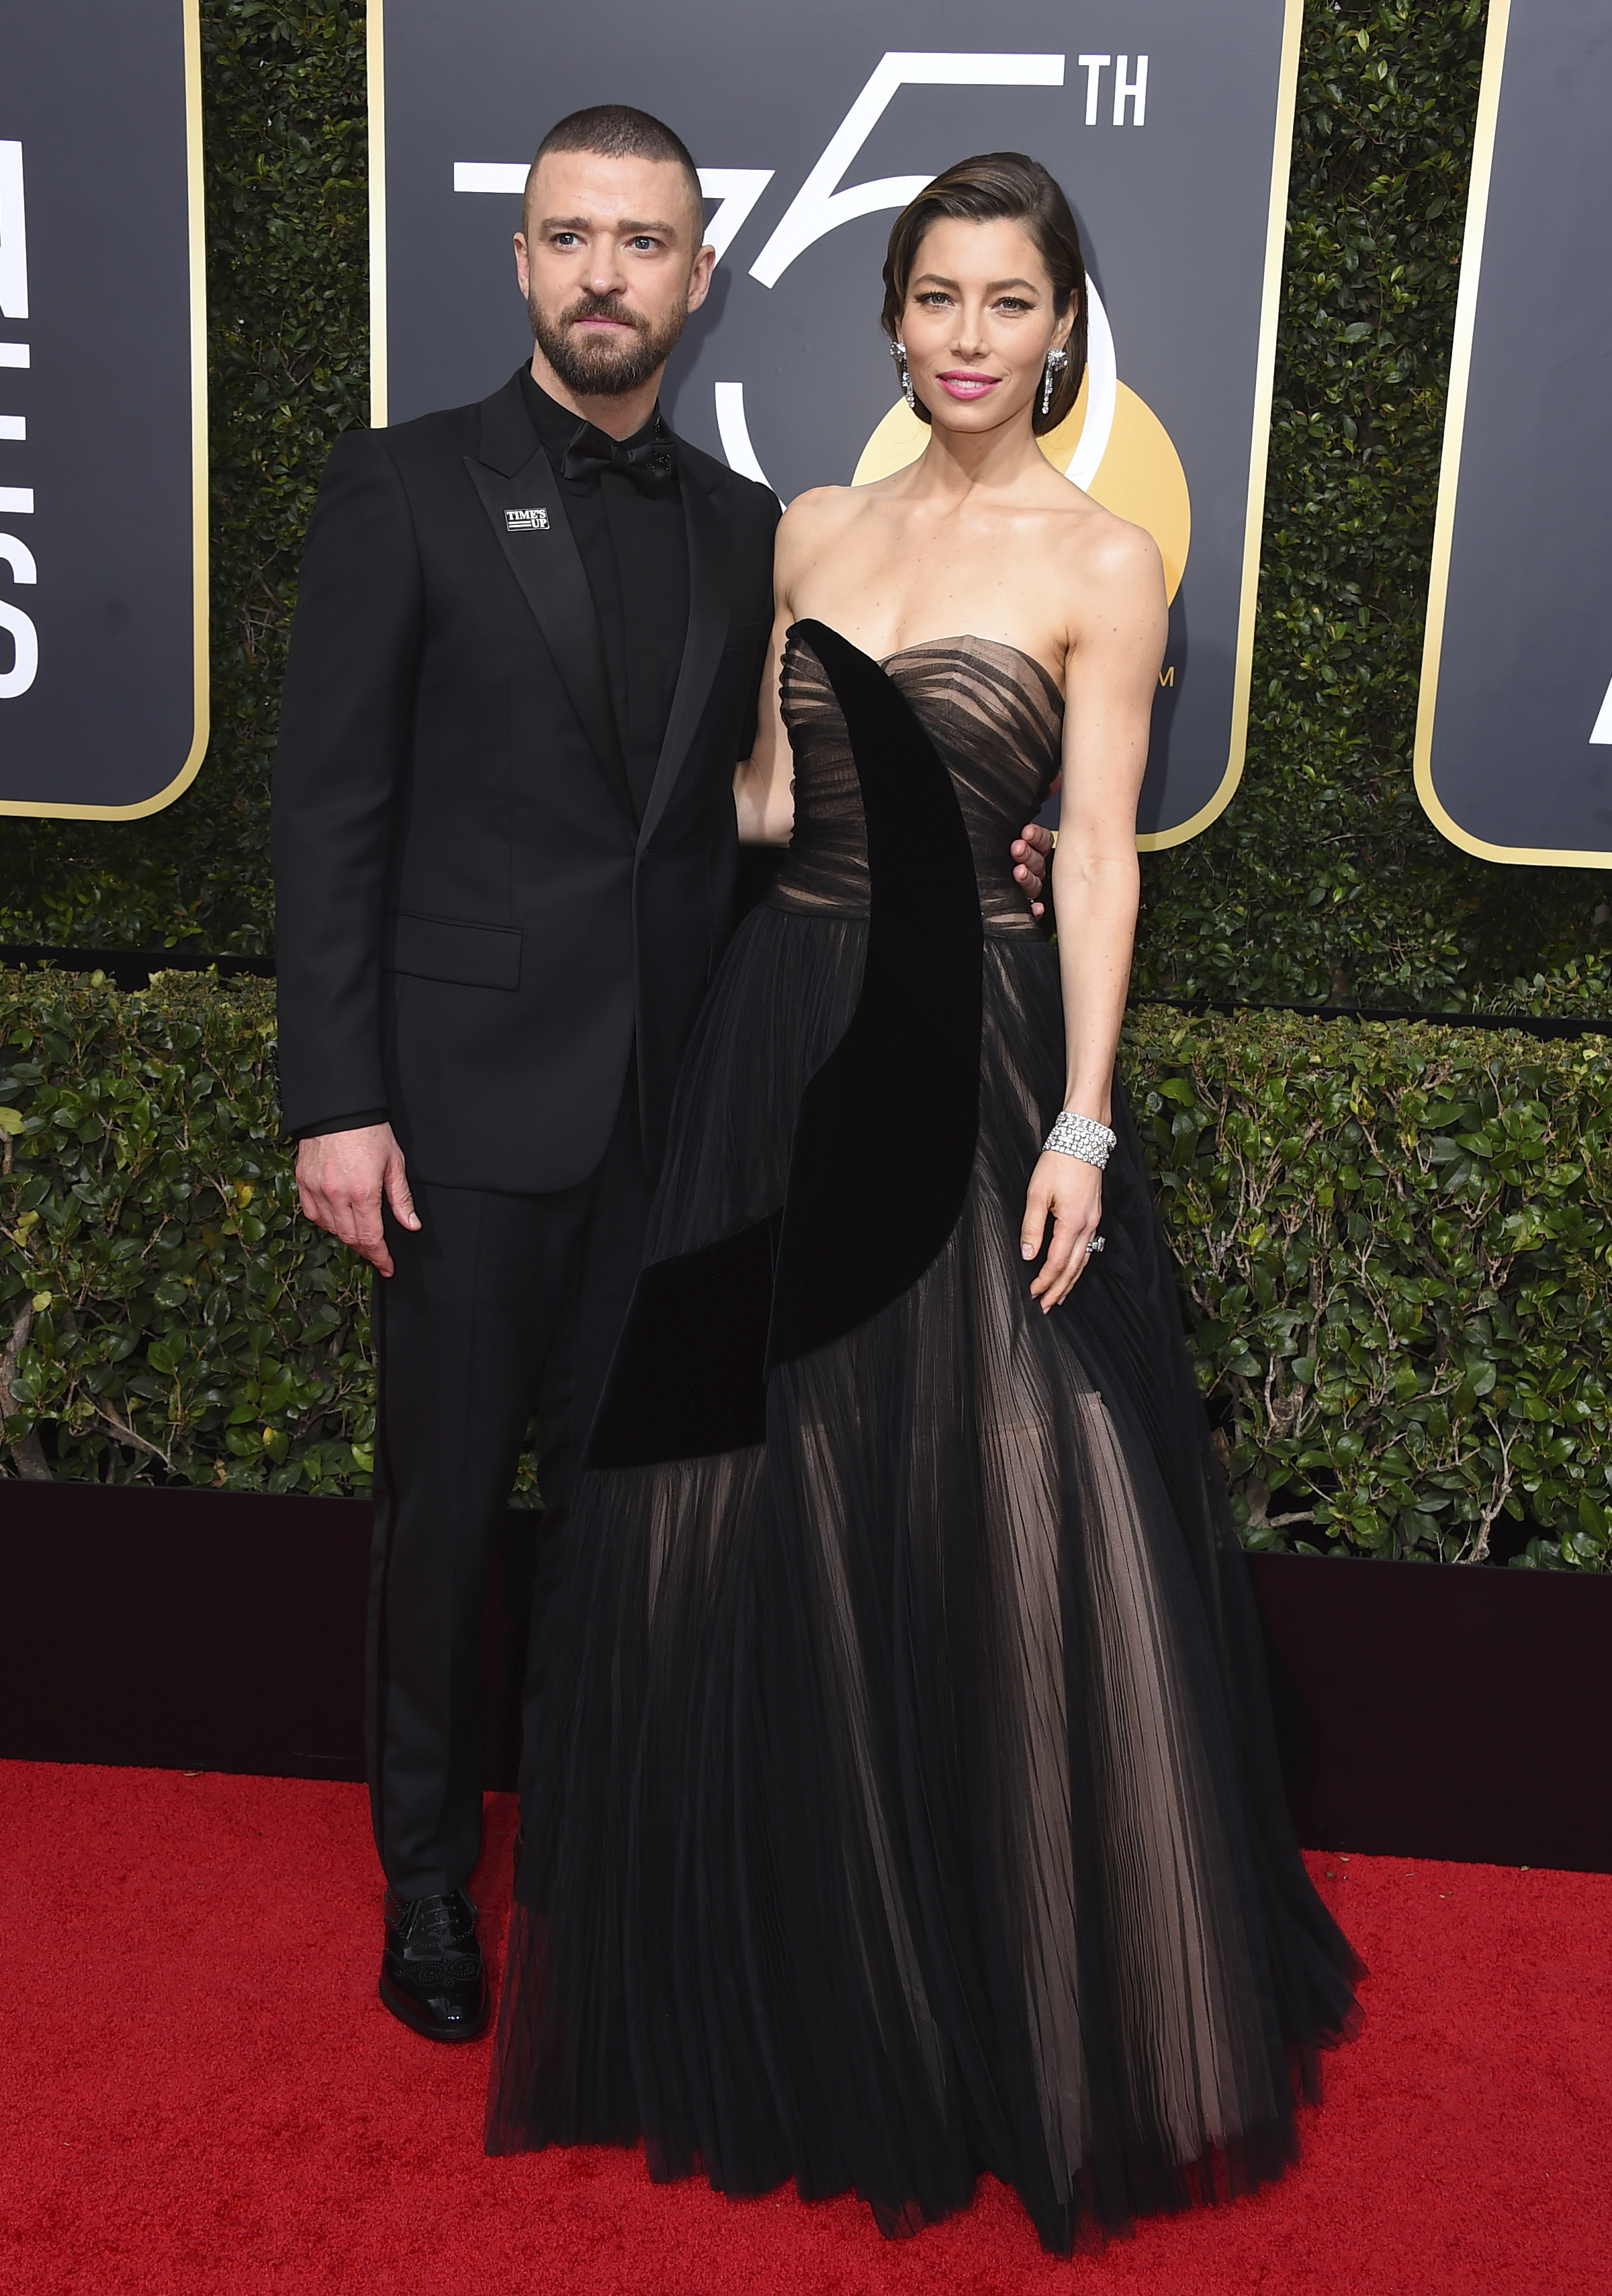 <div class='meta'><div class='origin-logo' data-origin='AP'></div><span class='caption-text' data-credit='Jordan Strauss/Invision/AP'>Justin Timberlake, left, and Jessica Biel arrive at the 75th annual Golden Globe Awards at the Beverly Hilton Hotel on Sunday, Jan. 7, 2018, in Beverly Hills, Calif.</span></div>